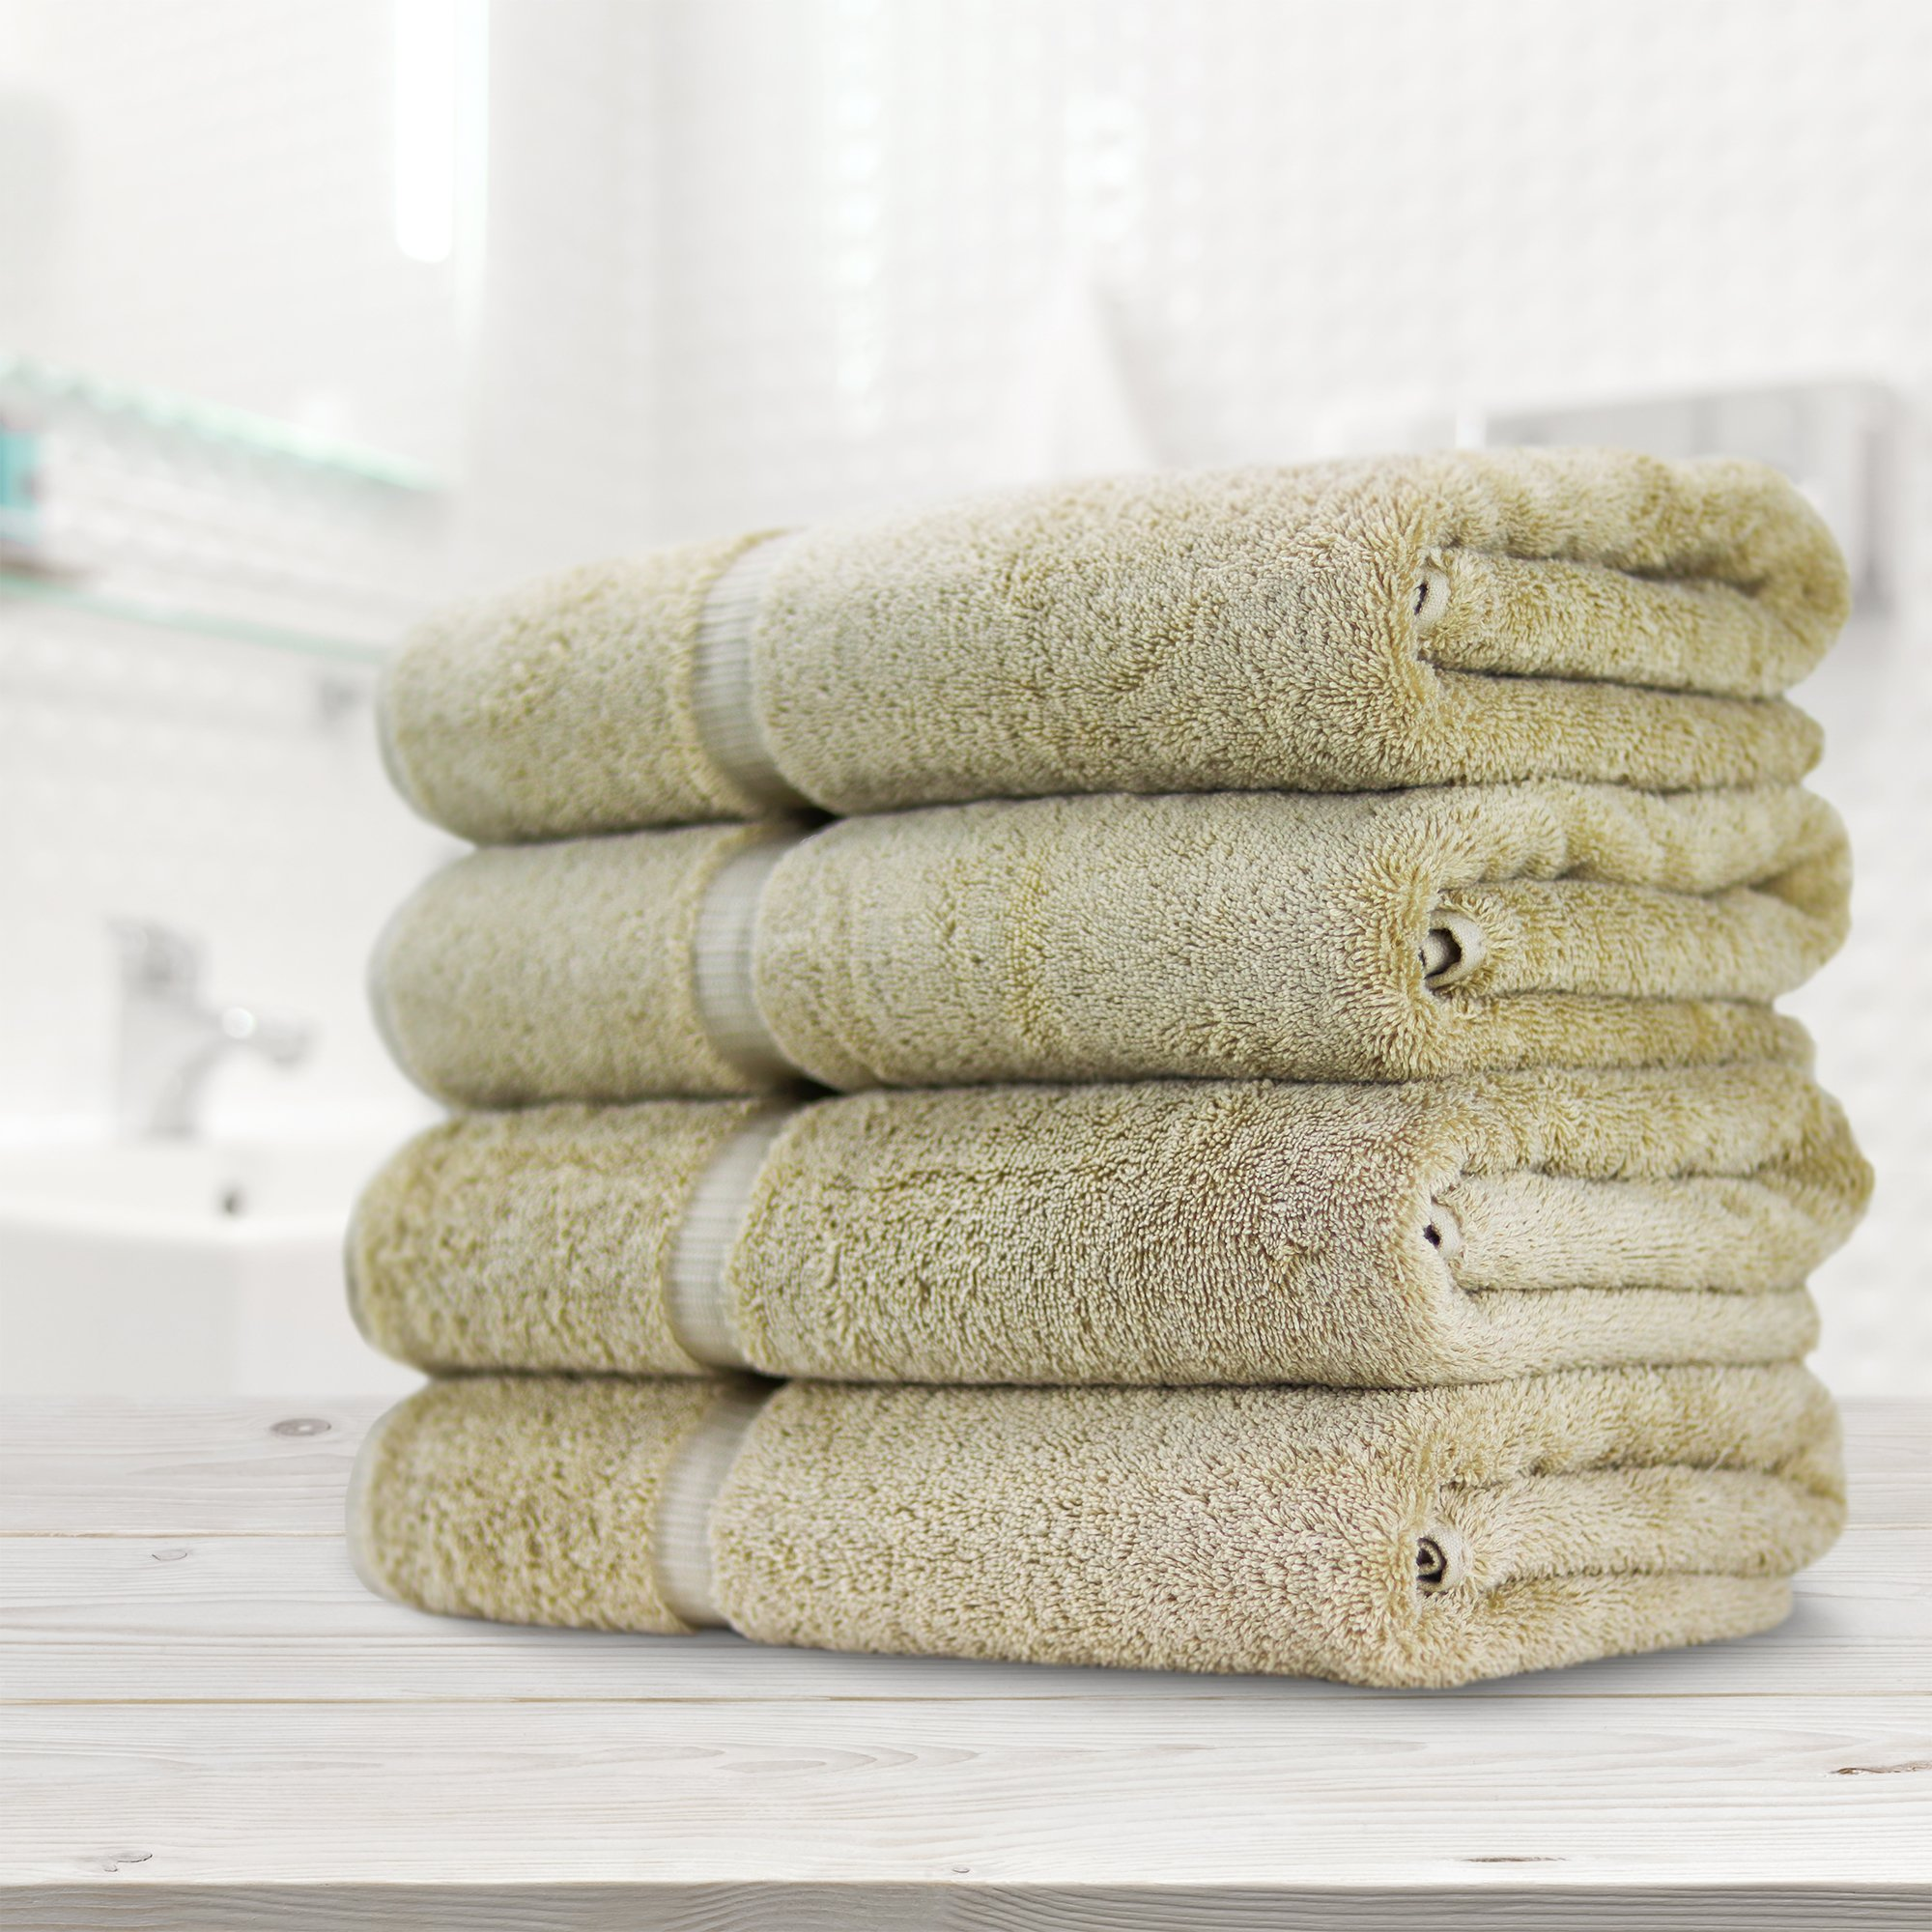 Towel Bazaar Premium Eco-Friendly 100% Turkish Cotton Hand Towel Set of 4, Multipurpose Bathroom Towels for Hand, Face, Gym and Spa (16 x 30 inches, Driftwood) by Towel Bazaar (Image #4)